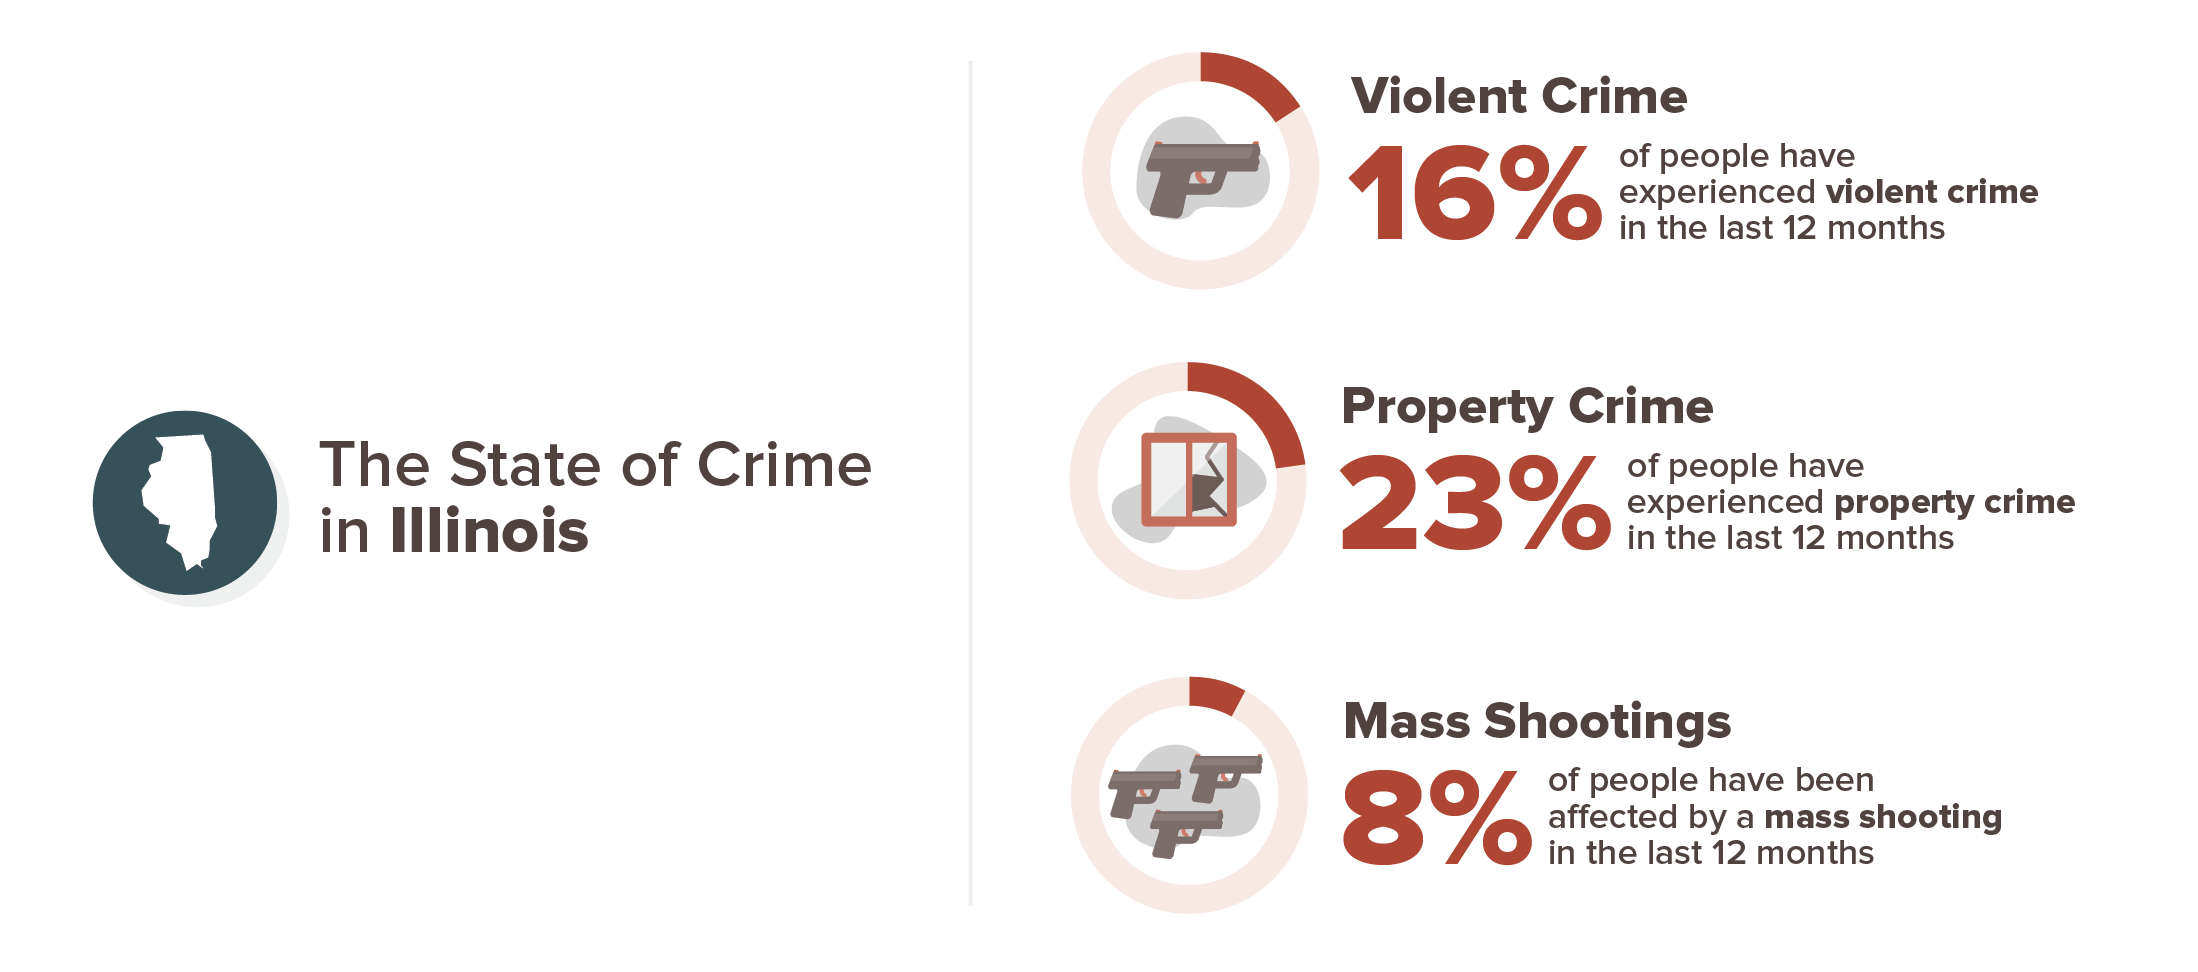 Illinois crime stats infographic